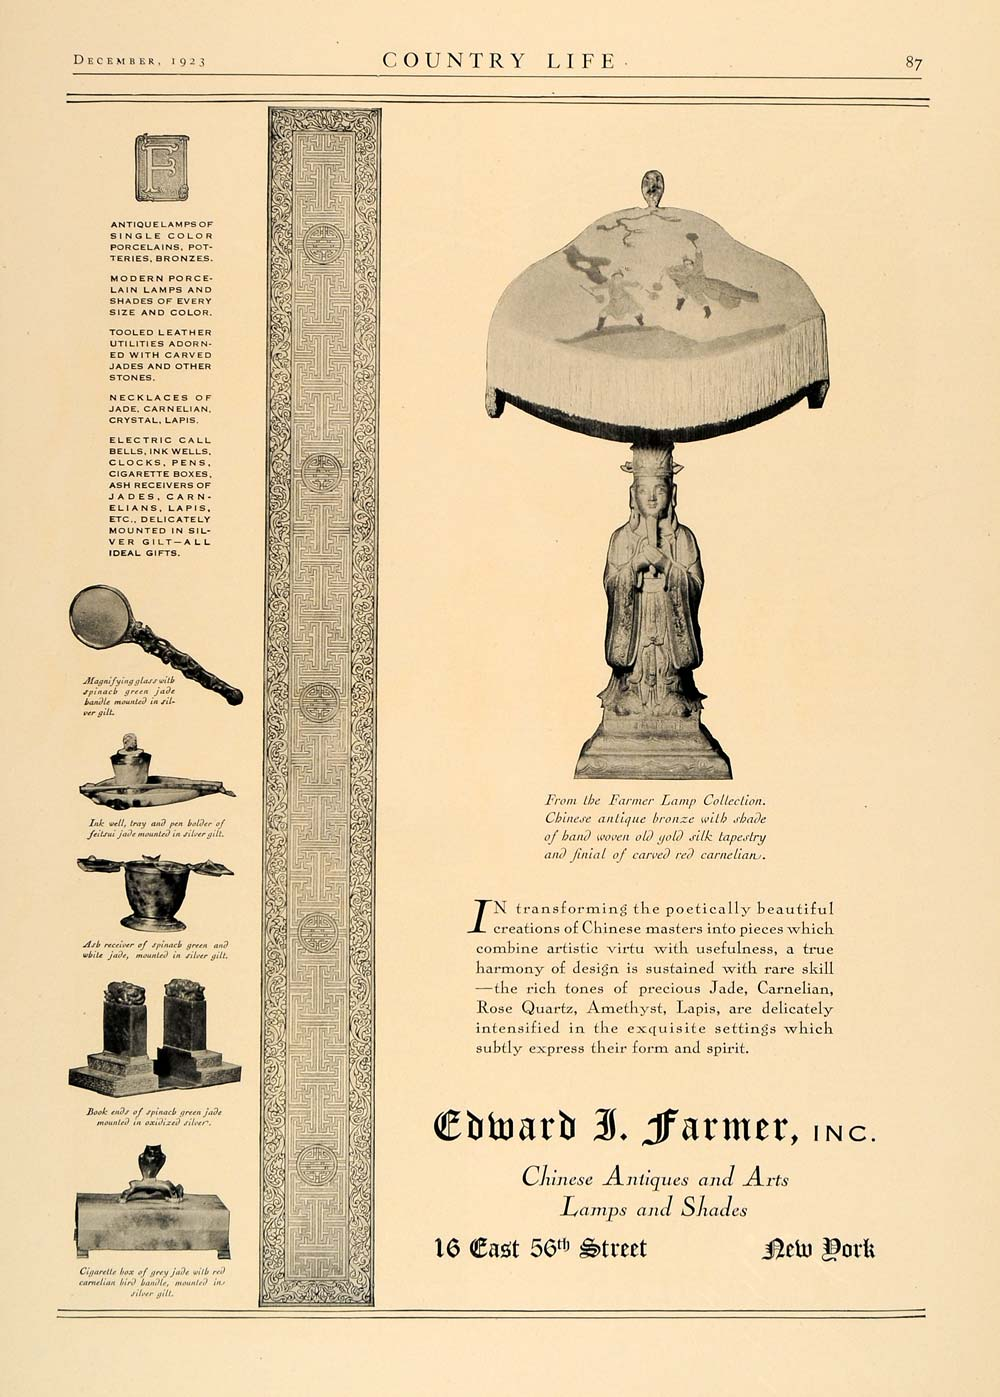 1923 Ad Edward J. Farmer Chinese Antiques Lamps Shades - ORIGINAL CL4